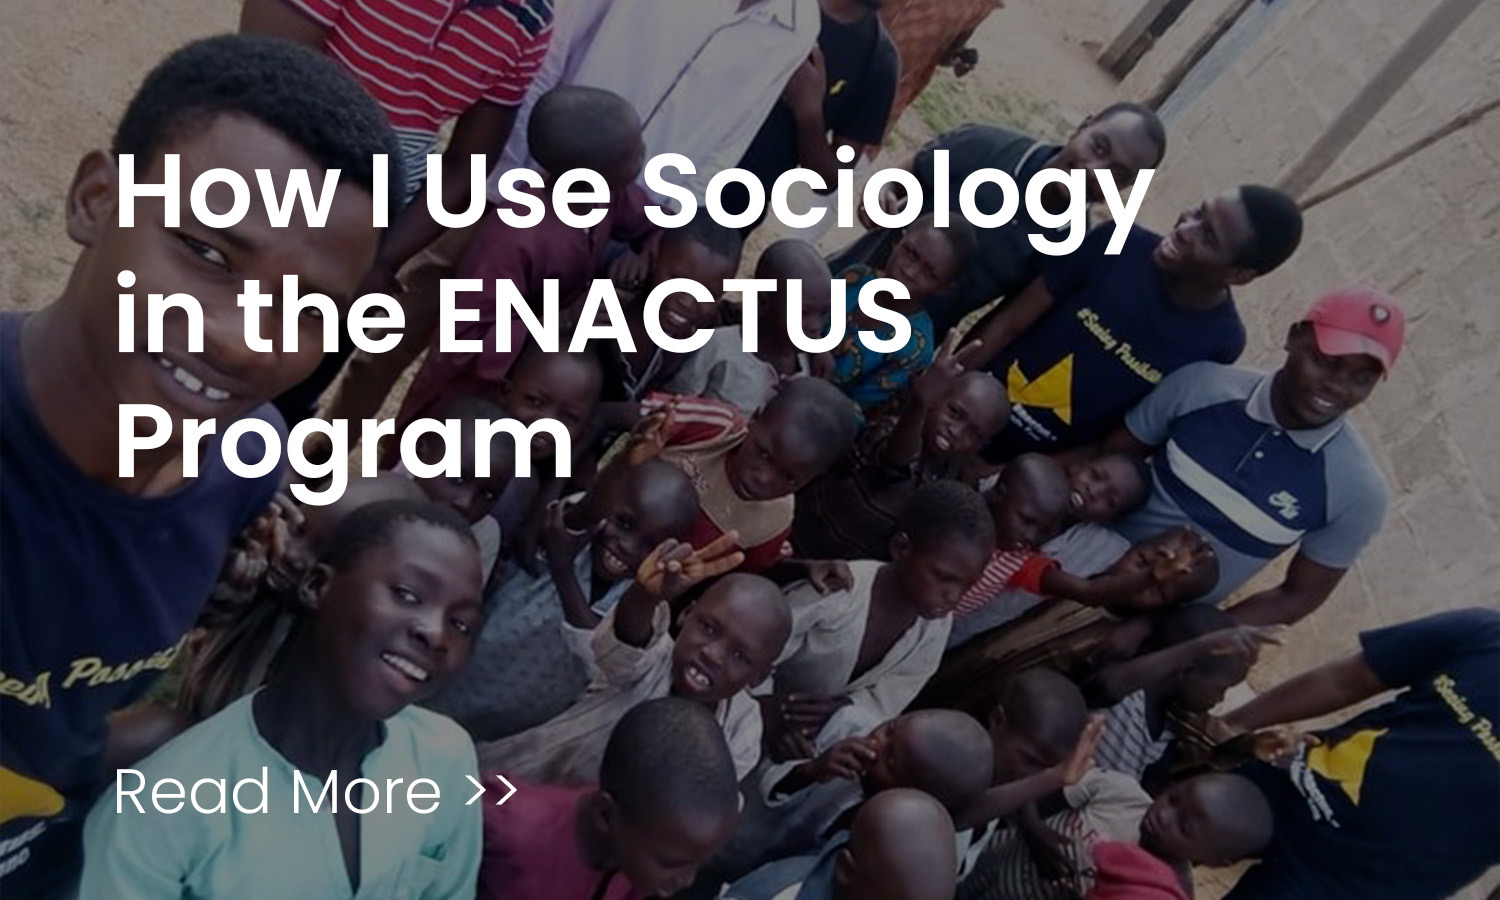 How I Use Sociology in the ENACTUS Program